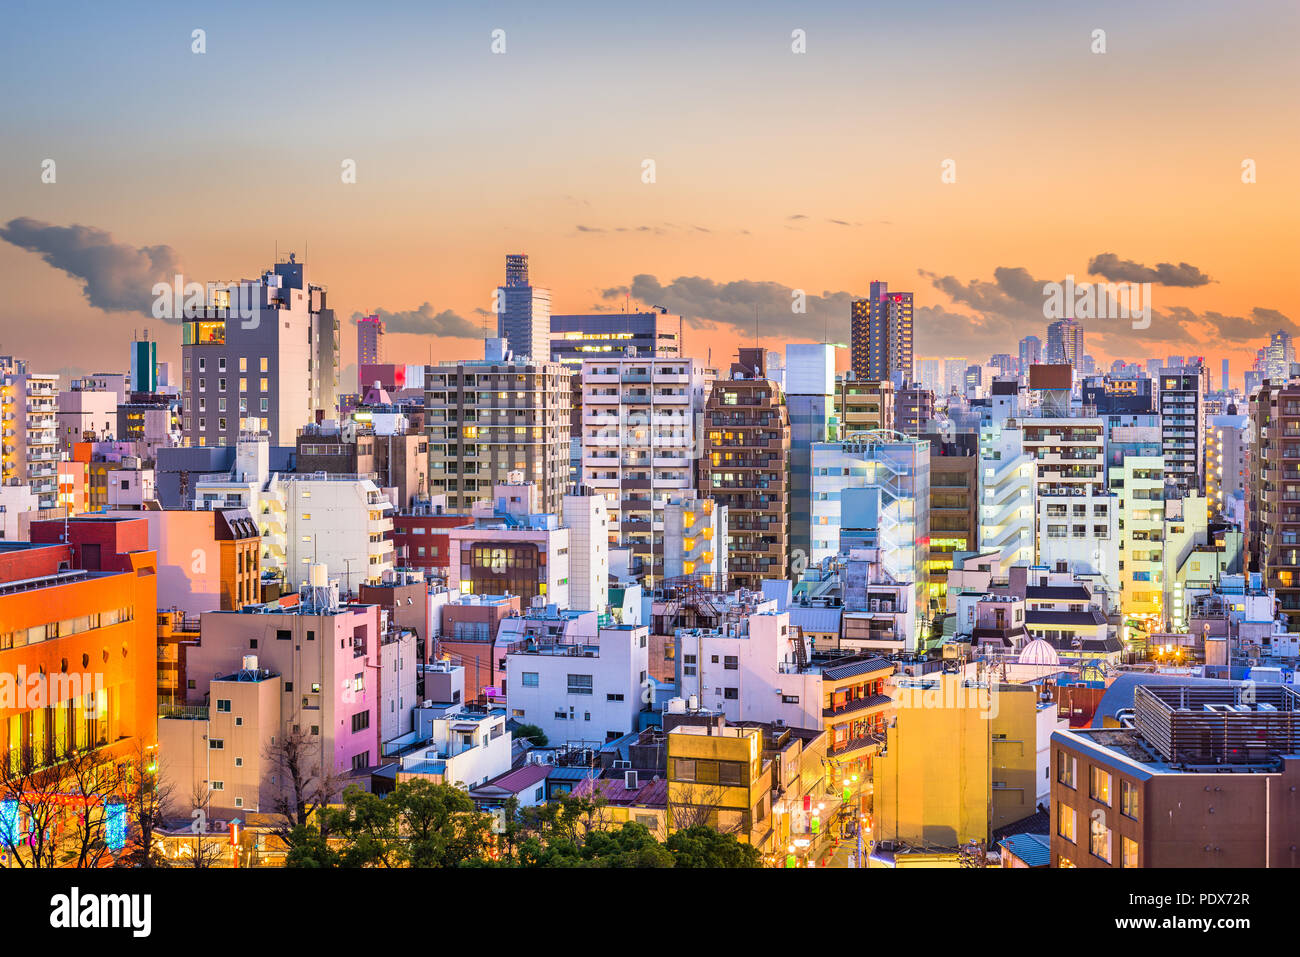 Tokyo, Japon et d'immeubles d'architecture dans le quartier de Sumida au crépuscule. Photo Stock